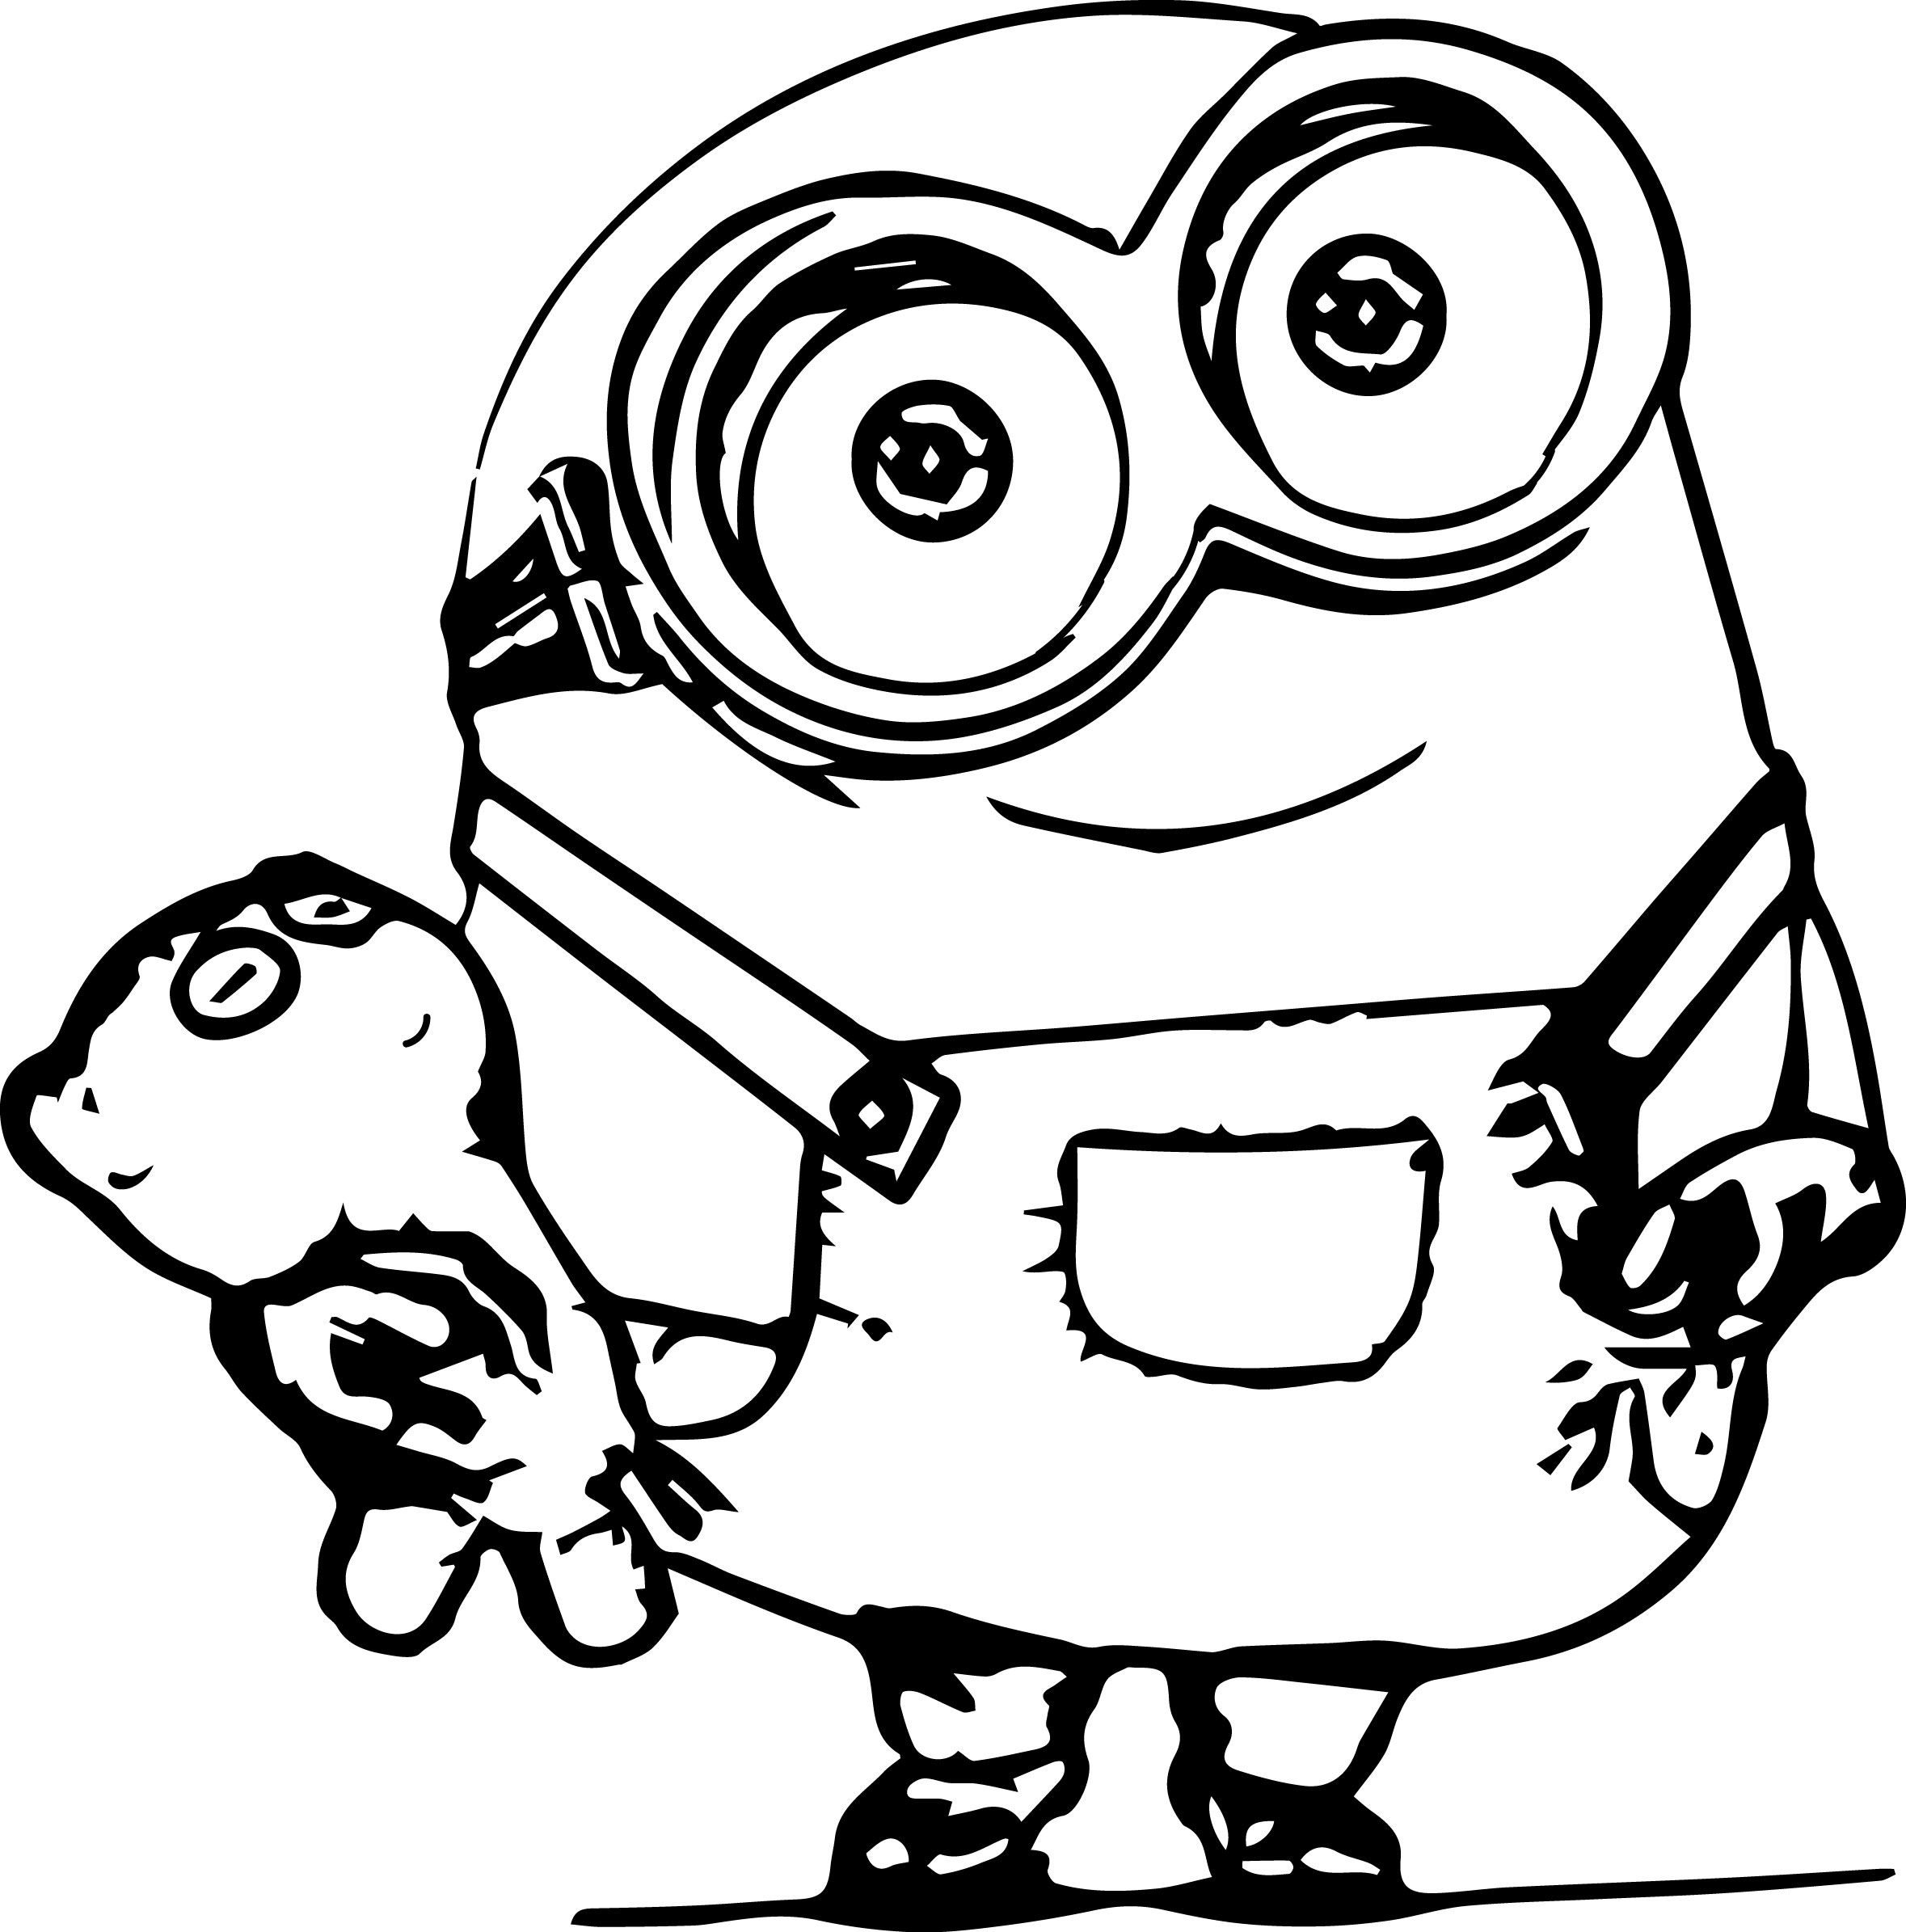 minions pdf top 35 39despicable me 239 coloring pages for your naughty minions pdf